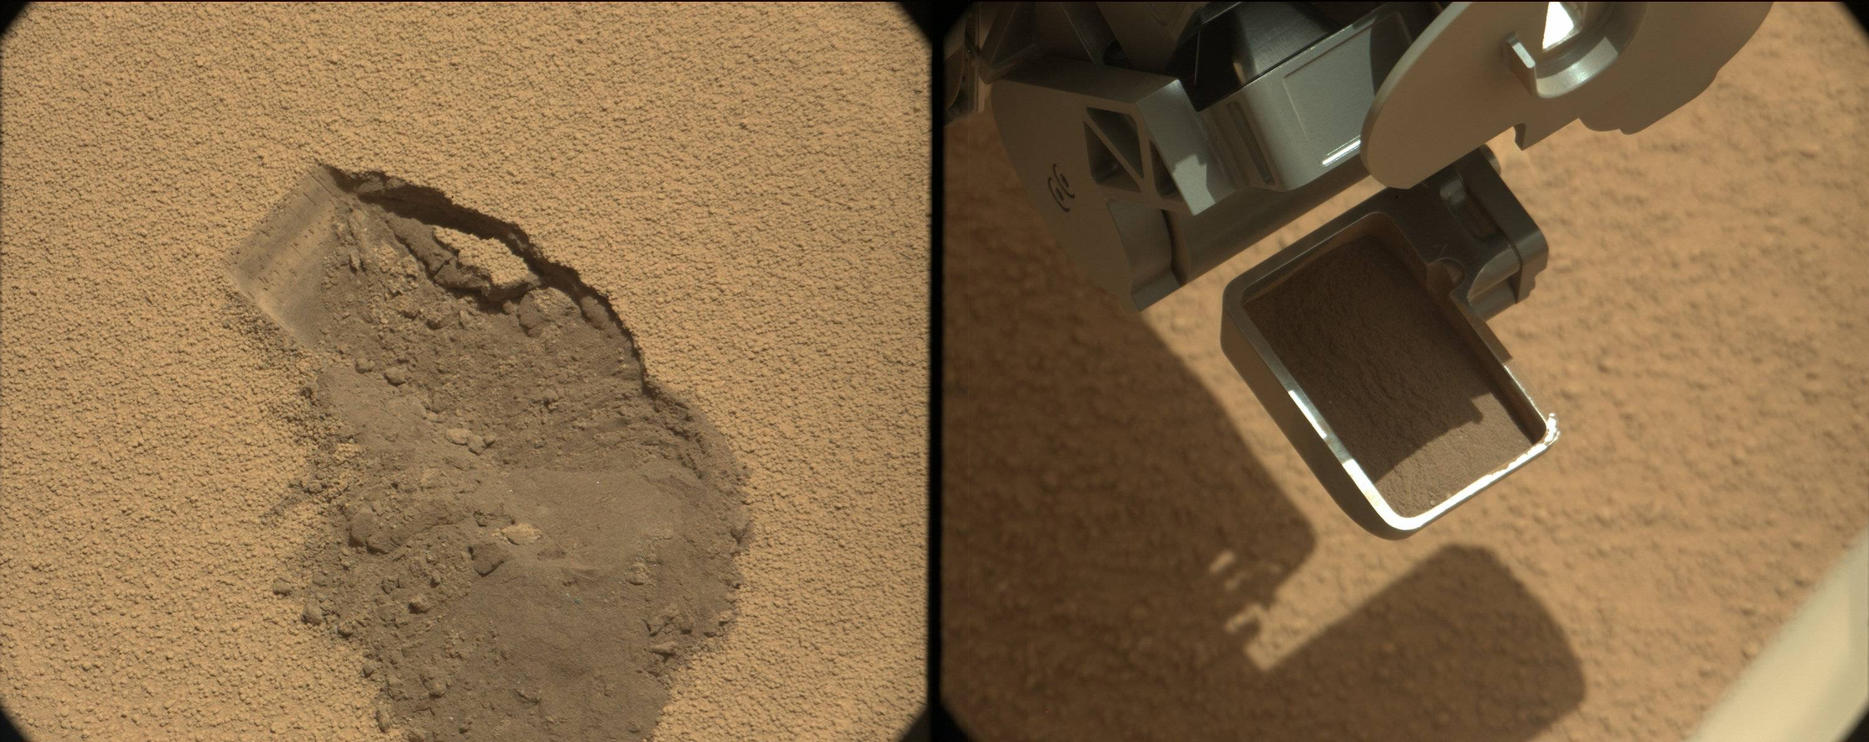 This pairing illustrates the first time that NASA's Mars rover Curiosity collected a scoop of soil on Mars.